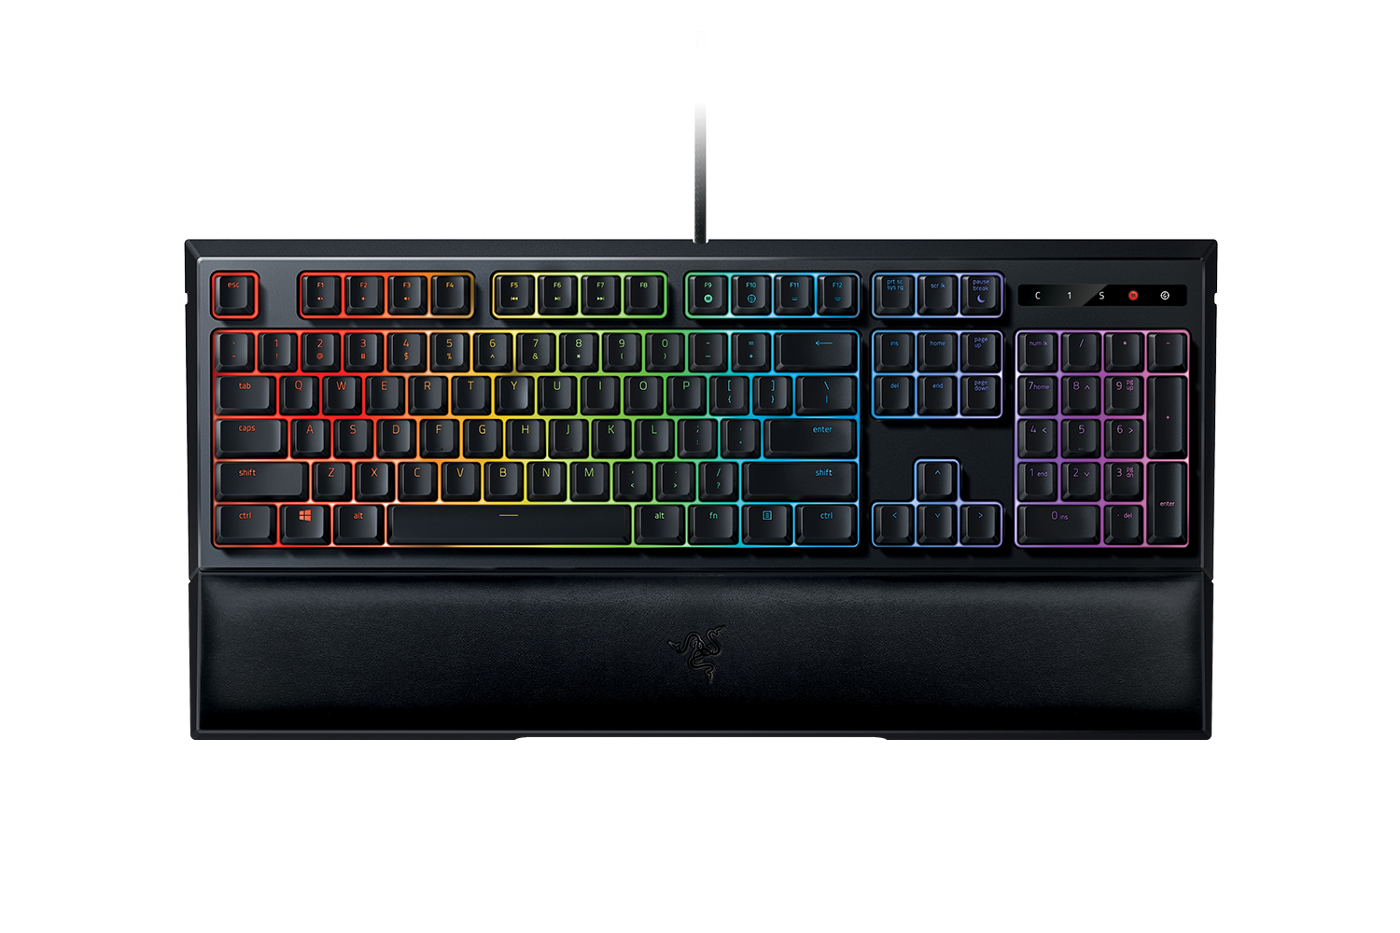 Razer Ornata Chroma Gaming Keyboard Review: An awesome affordable